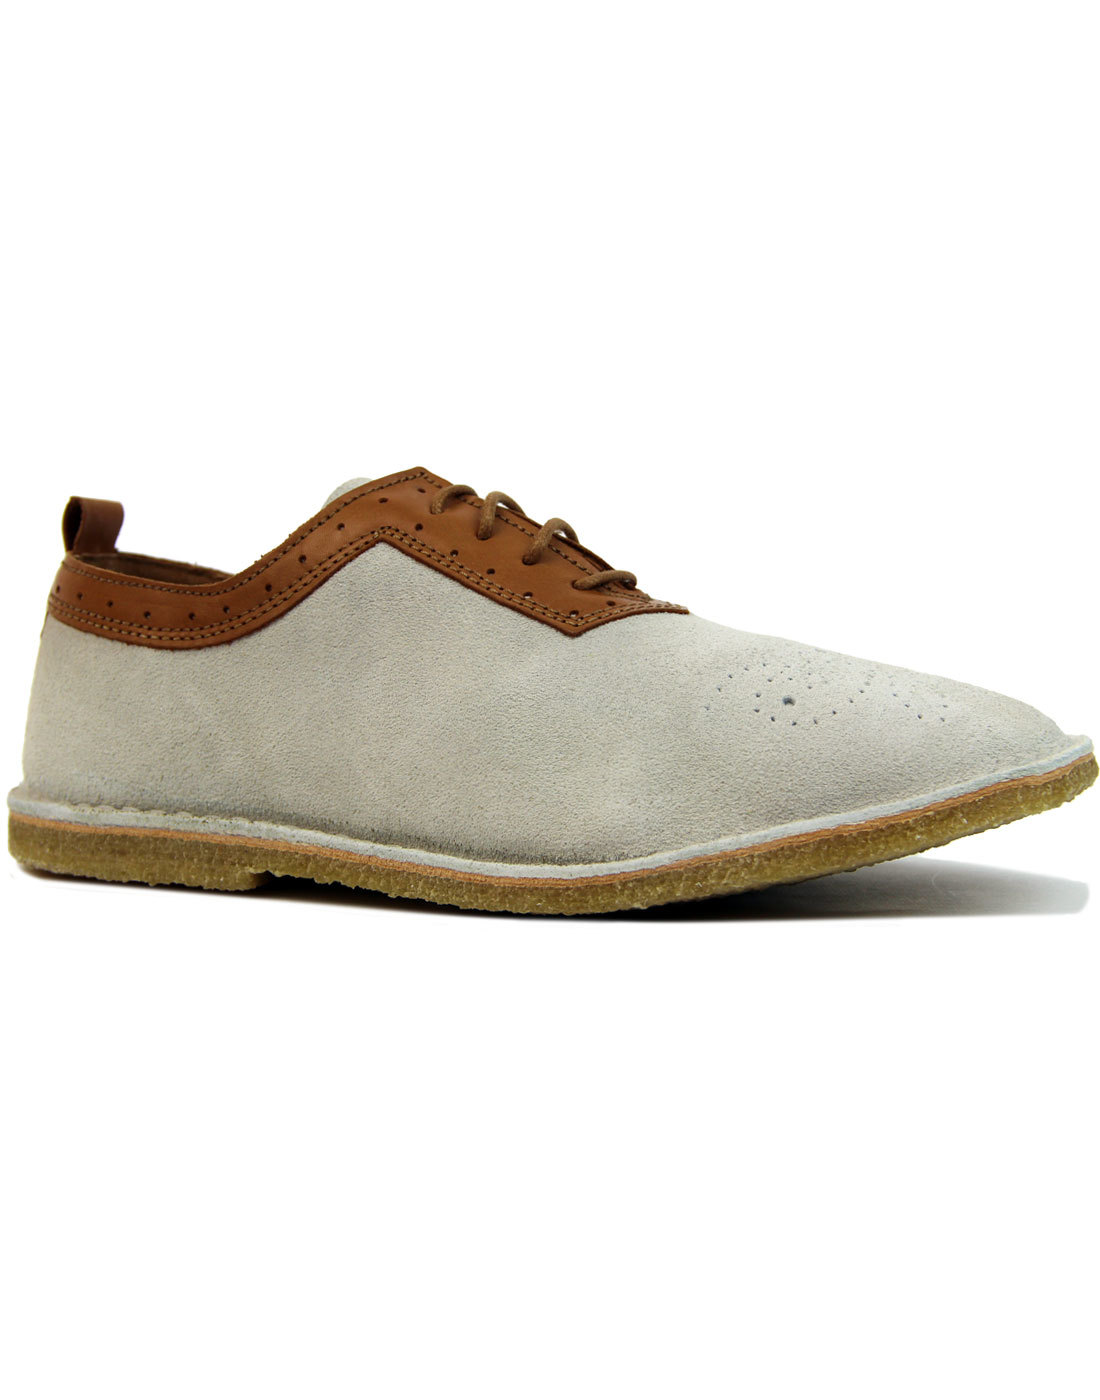 Connett DELICIOUS JUNCTION Retro Mod Suede Shoes